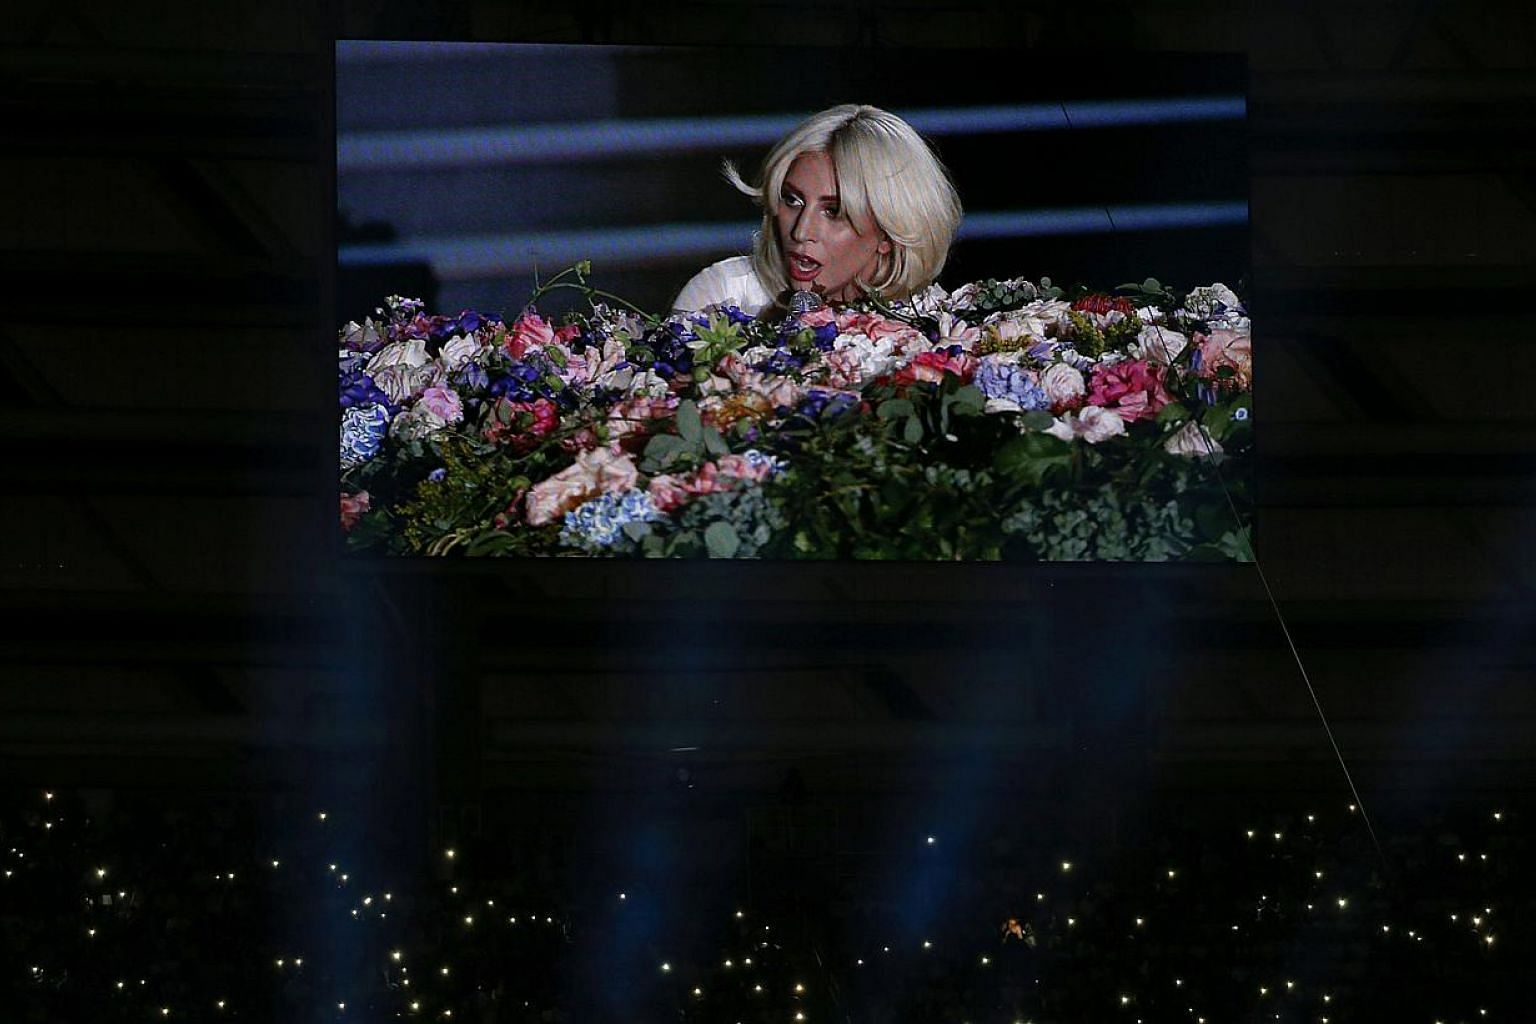 Singer Lady Gaga is displayed on a videowall while fans light their phones during the opening ceremony of the 1st European Games in Baku, Azerbaijan, June 12 , 2015. -- PHOTO: REUTERS